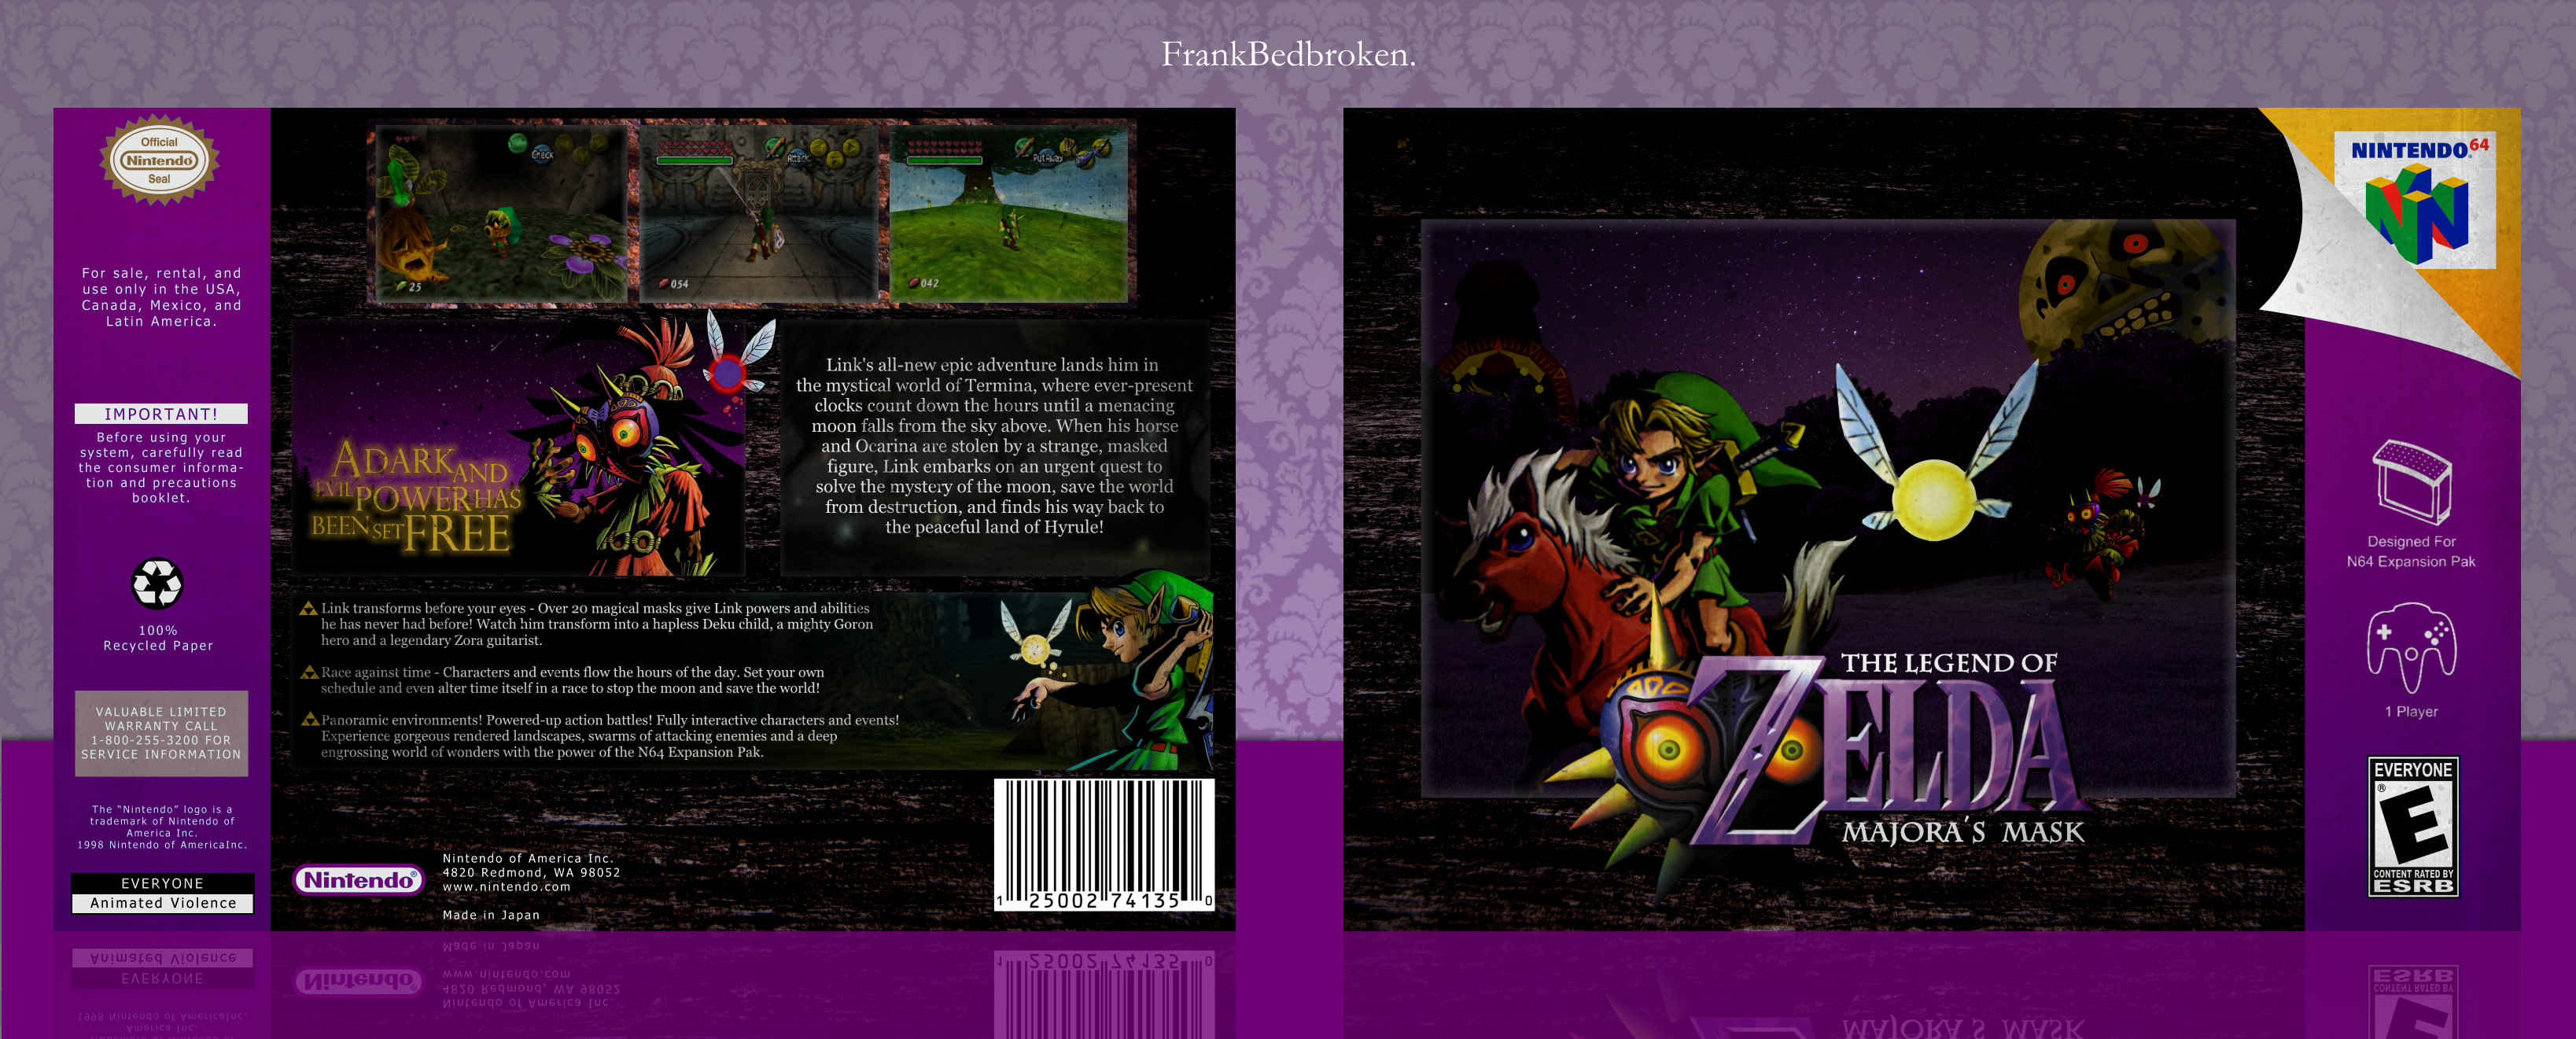 The Legend of Zelda: Majora's Mask box cover